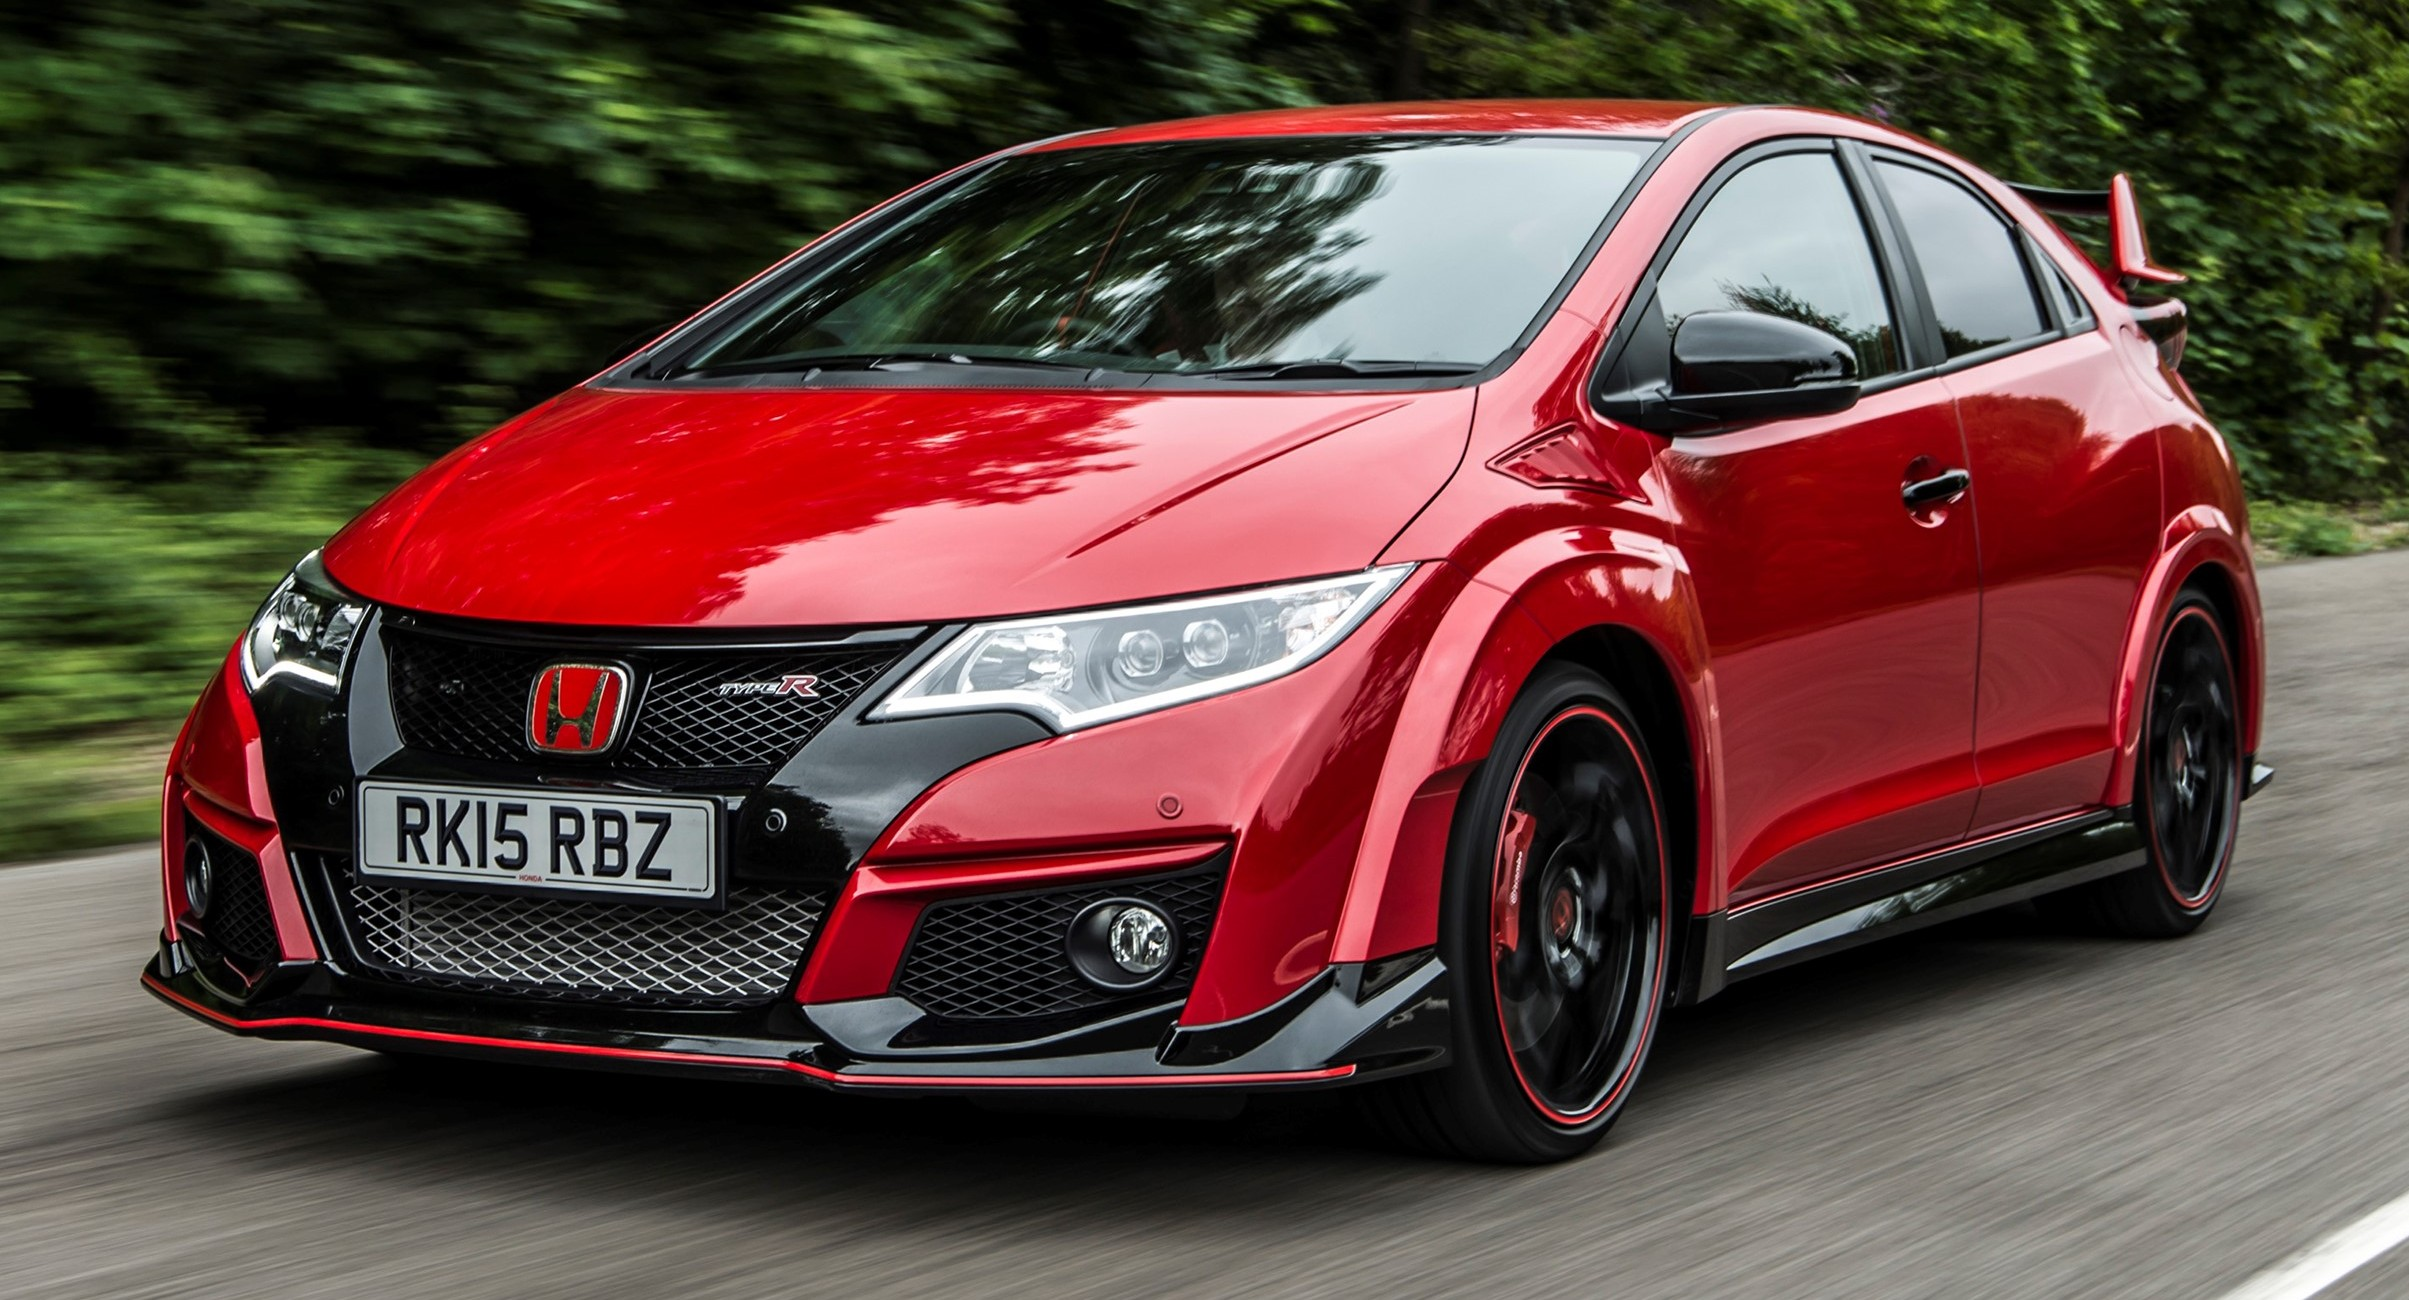 2015 Honda Civic Type R Detailed For The Euro Market Image 345457